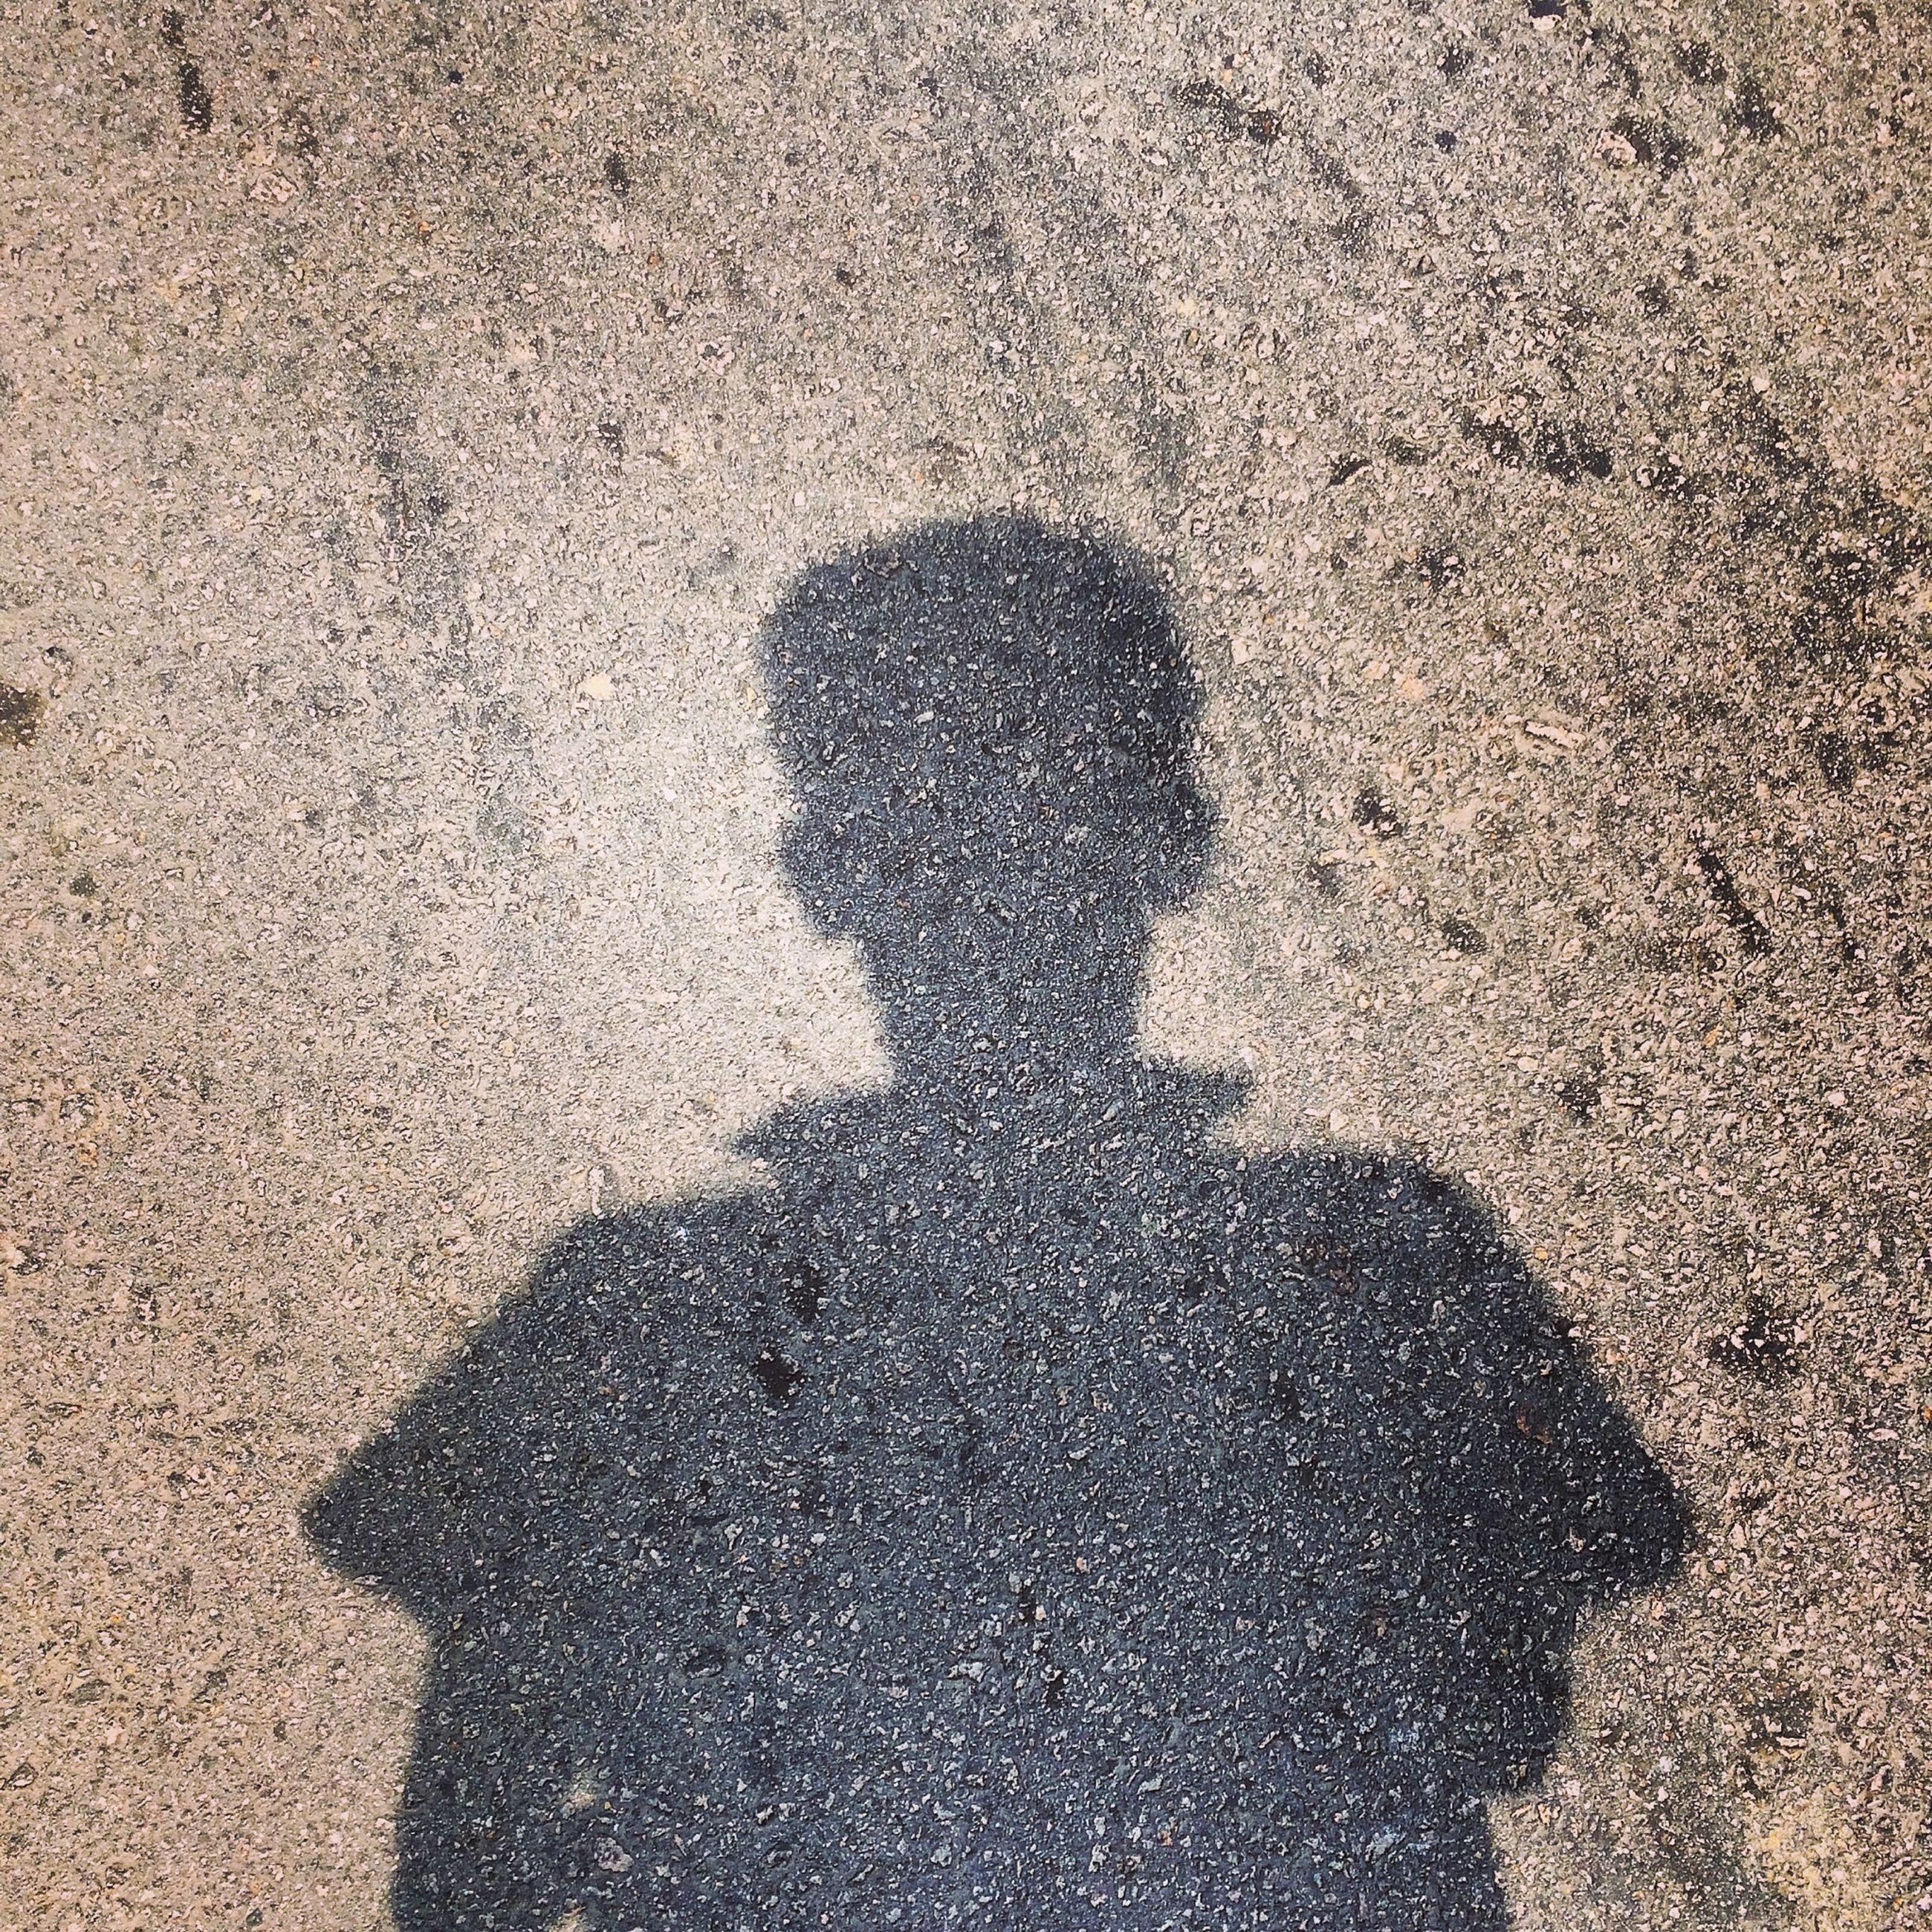 shadow, high angle view, focus on shadow, sunlight, lifestyles, street, leisure activity, silhouette, unrecognizable person, standing, outdoors, day, men, road, sand, outline, walking, ground